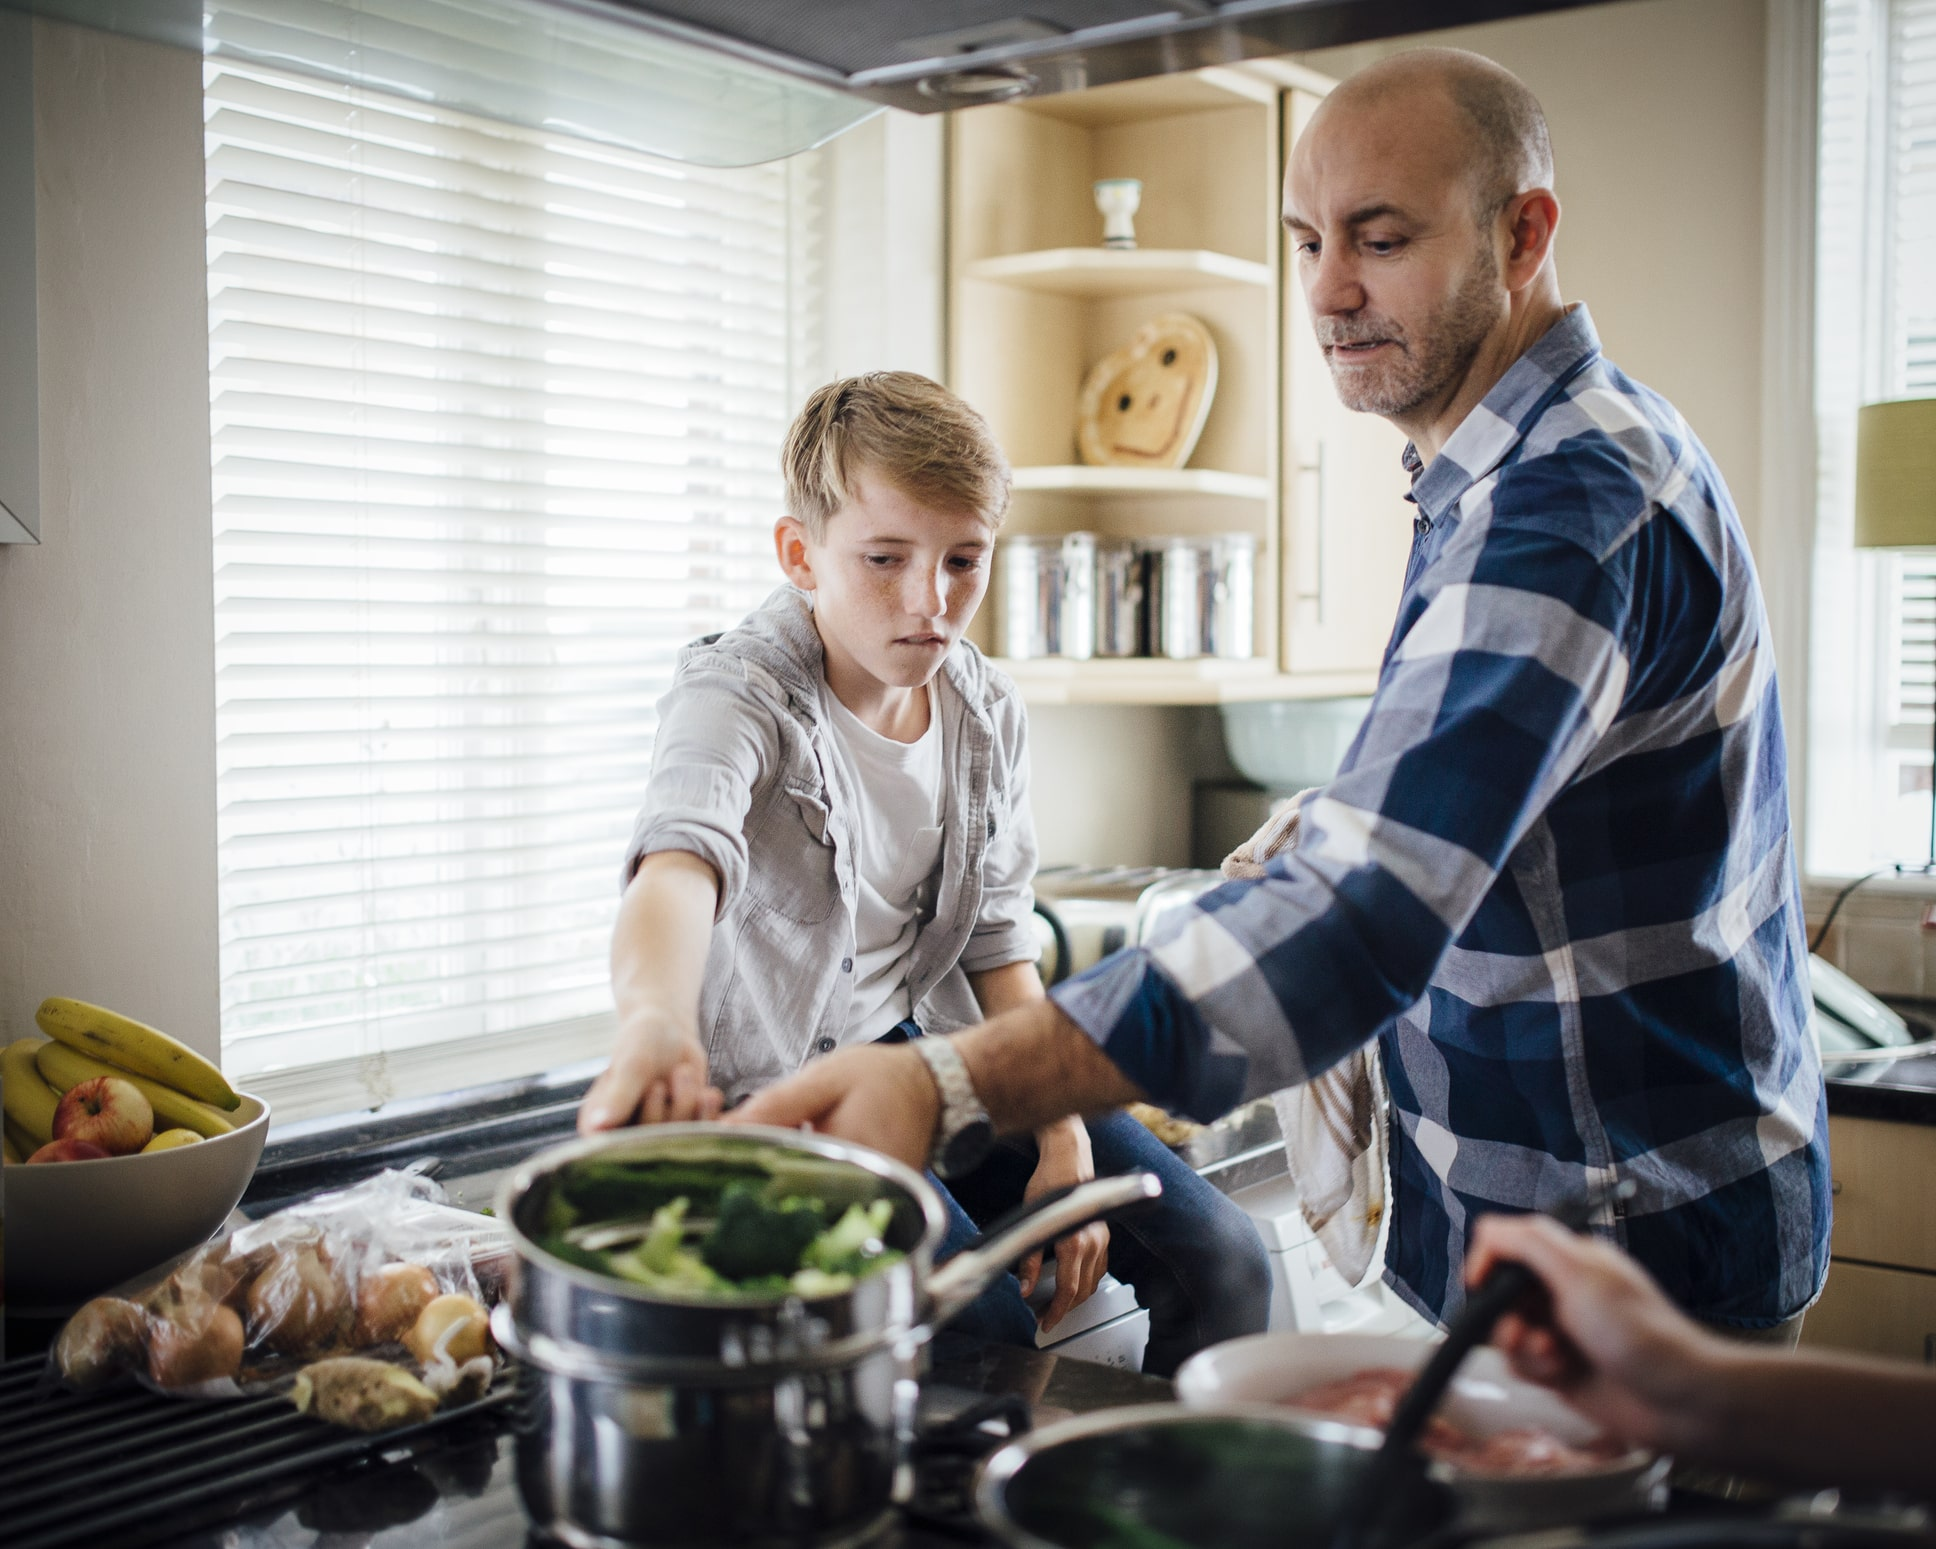 Cooking at Home: How to Stay Safe and Prevent Kitchen Fires